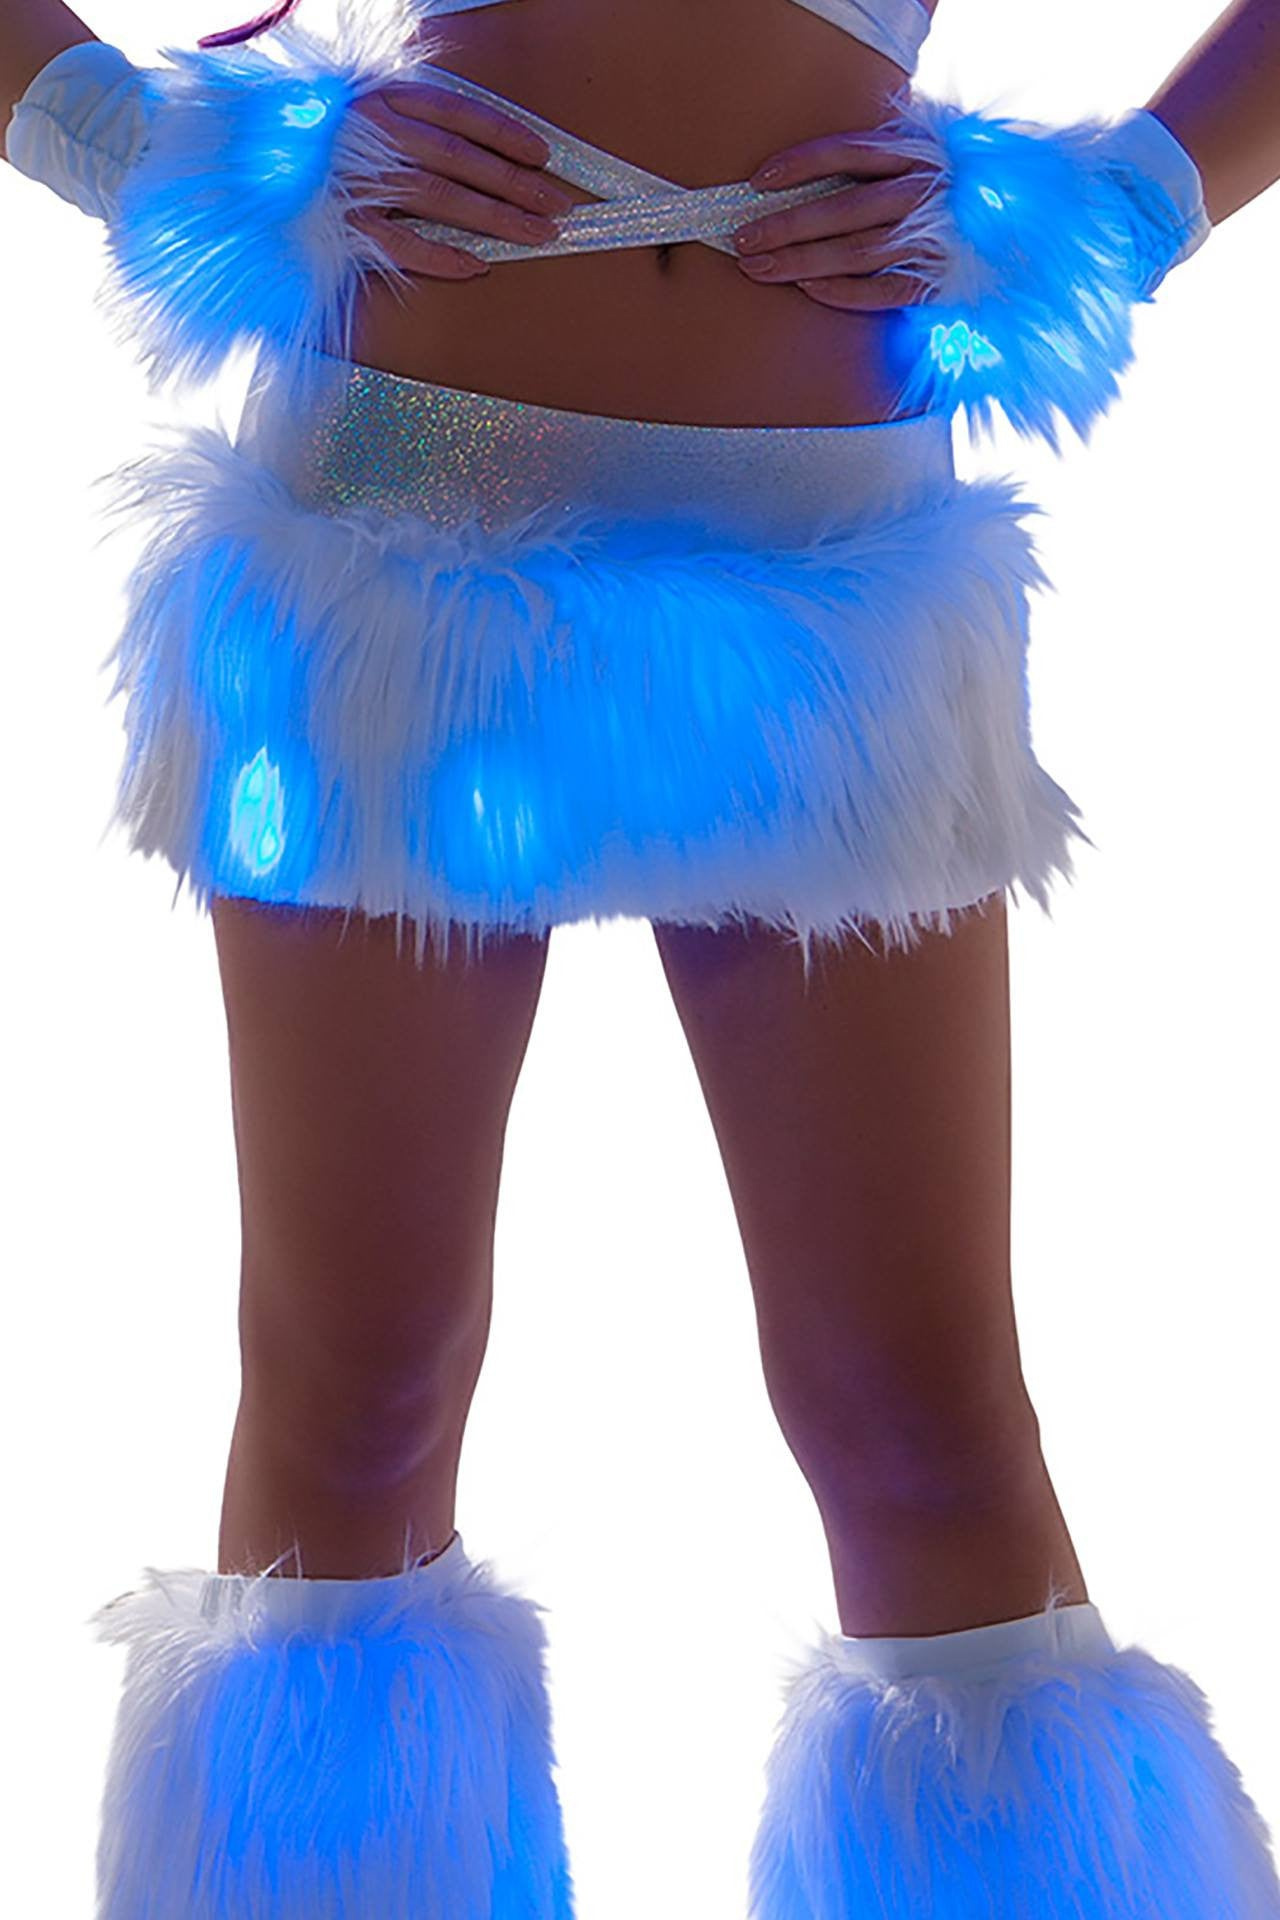 Rave Clothes For Women